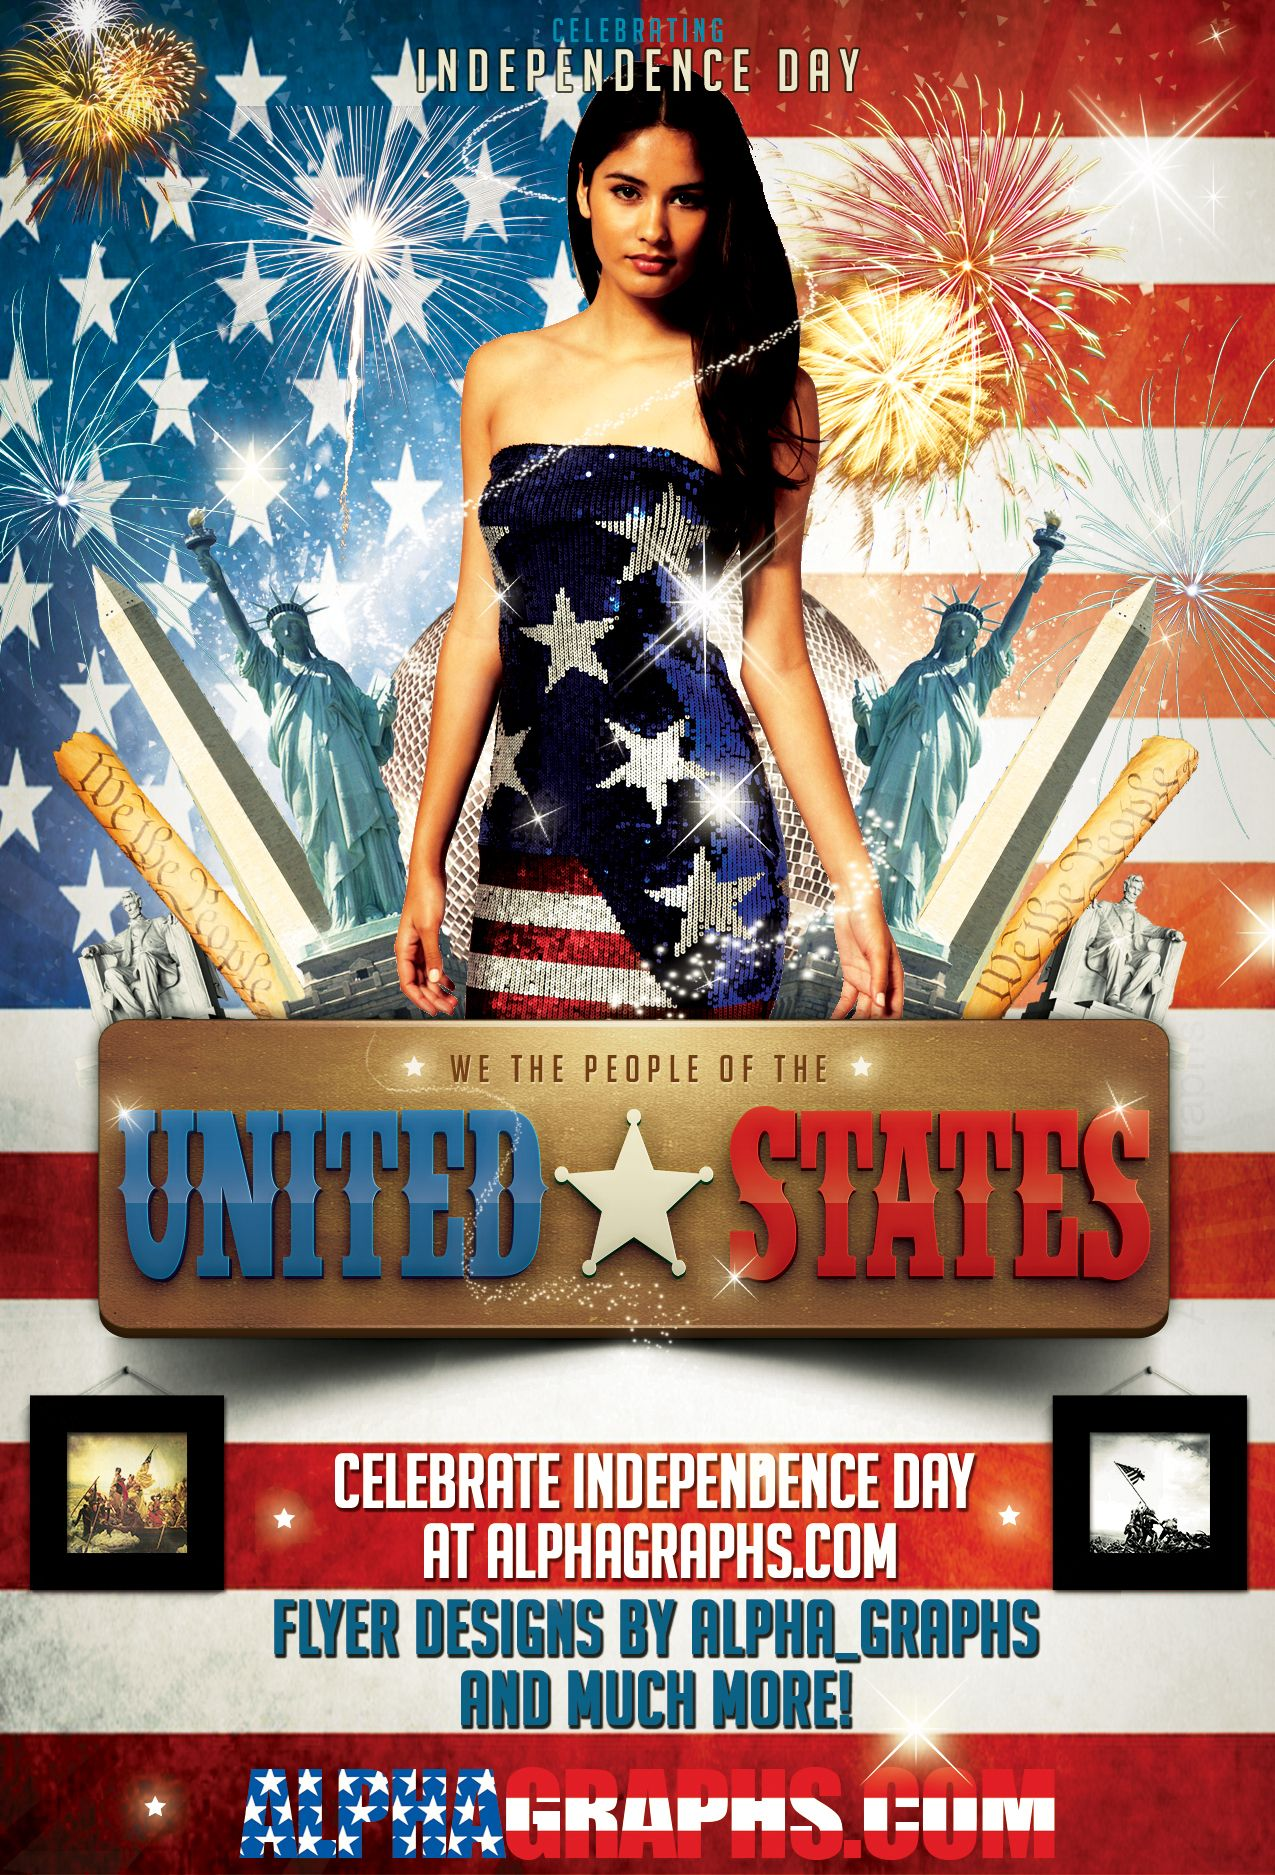 Celebrate Your Independence Day Flyer Templates Can Be Downloaded